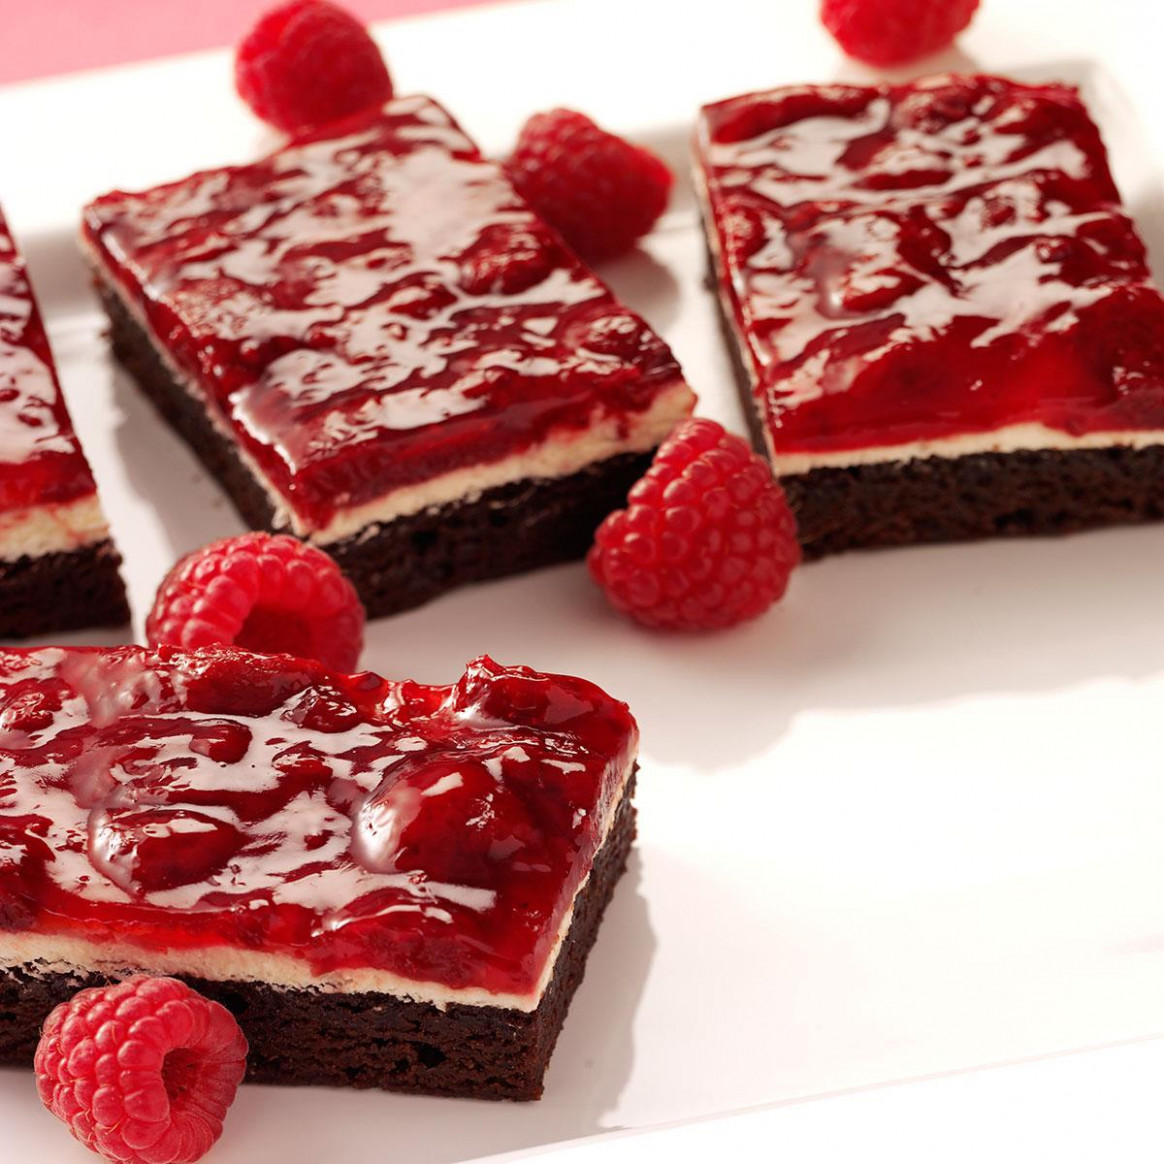 Raspberry Brownie Dessert Recipe | Taste of Home